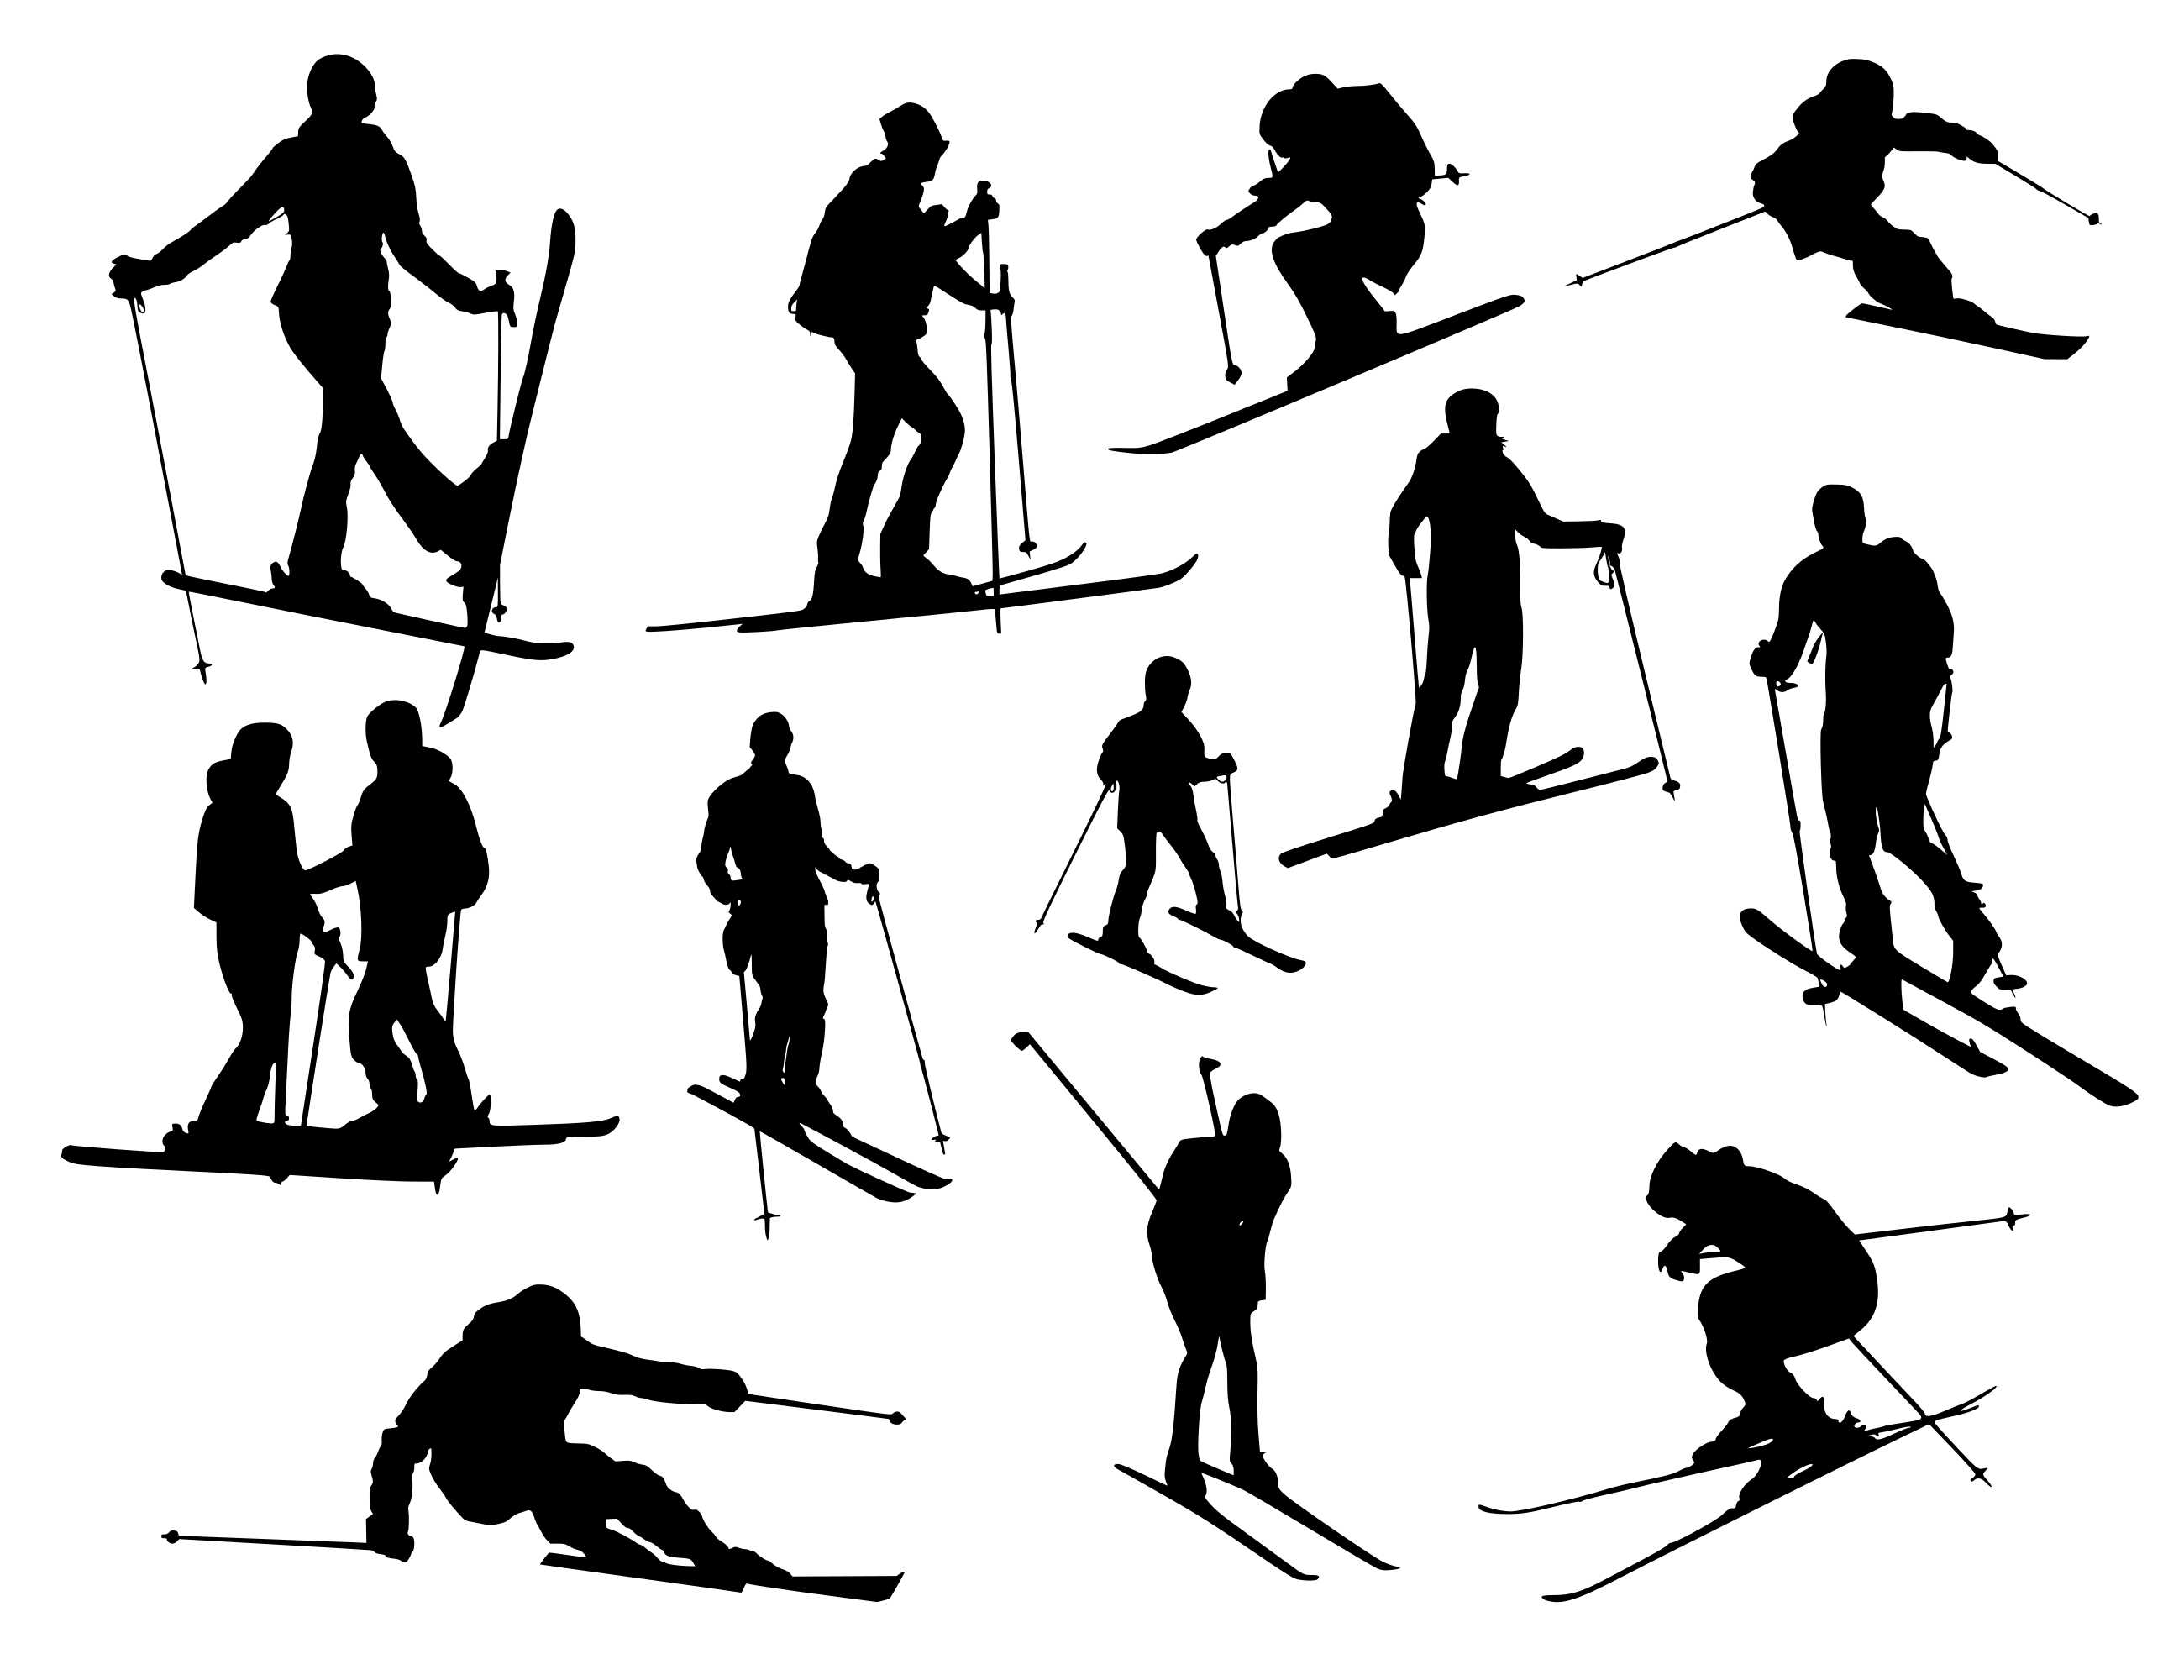 12-skiing-silhouette-cover.jpg